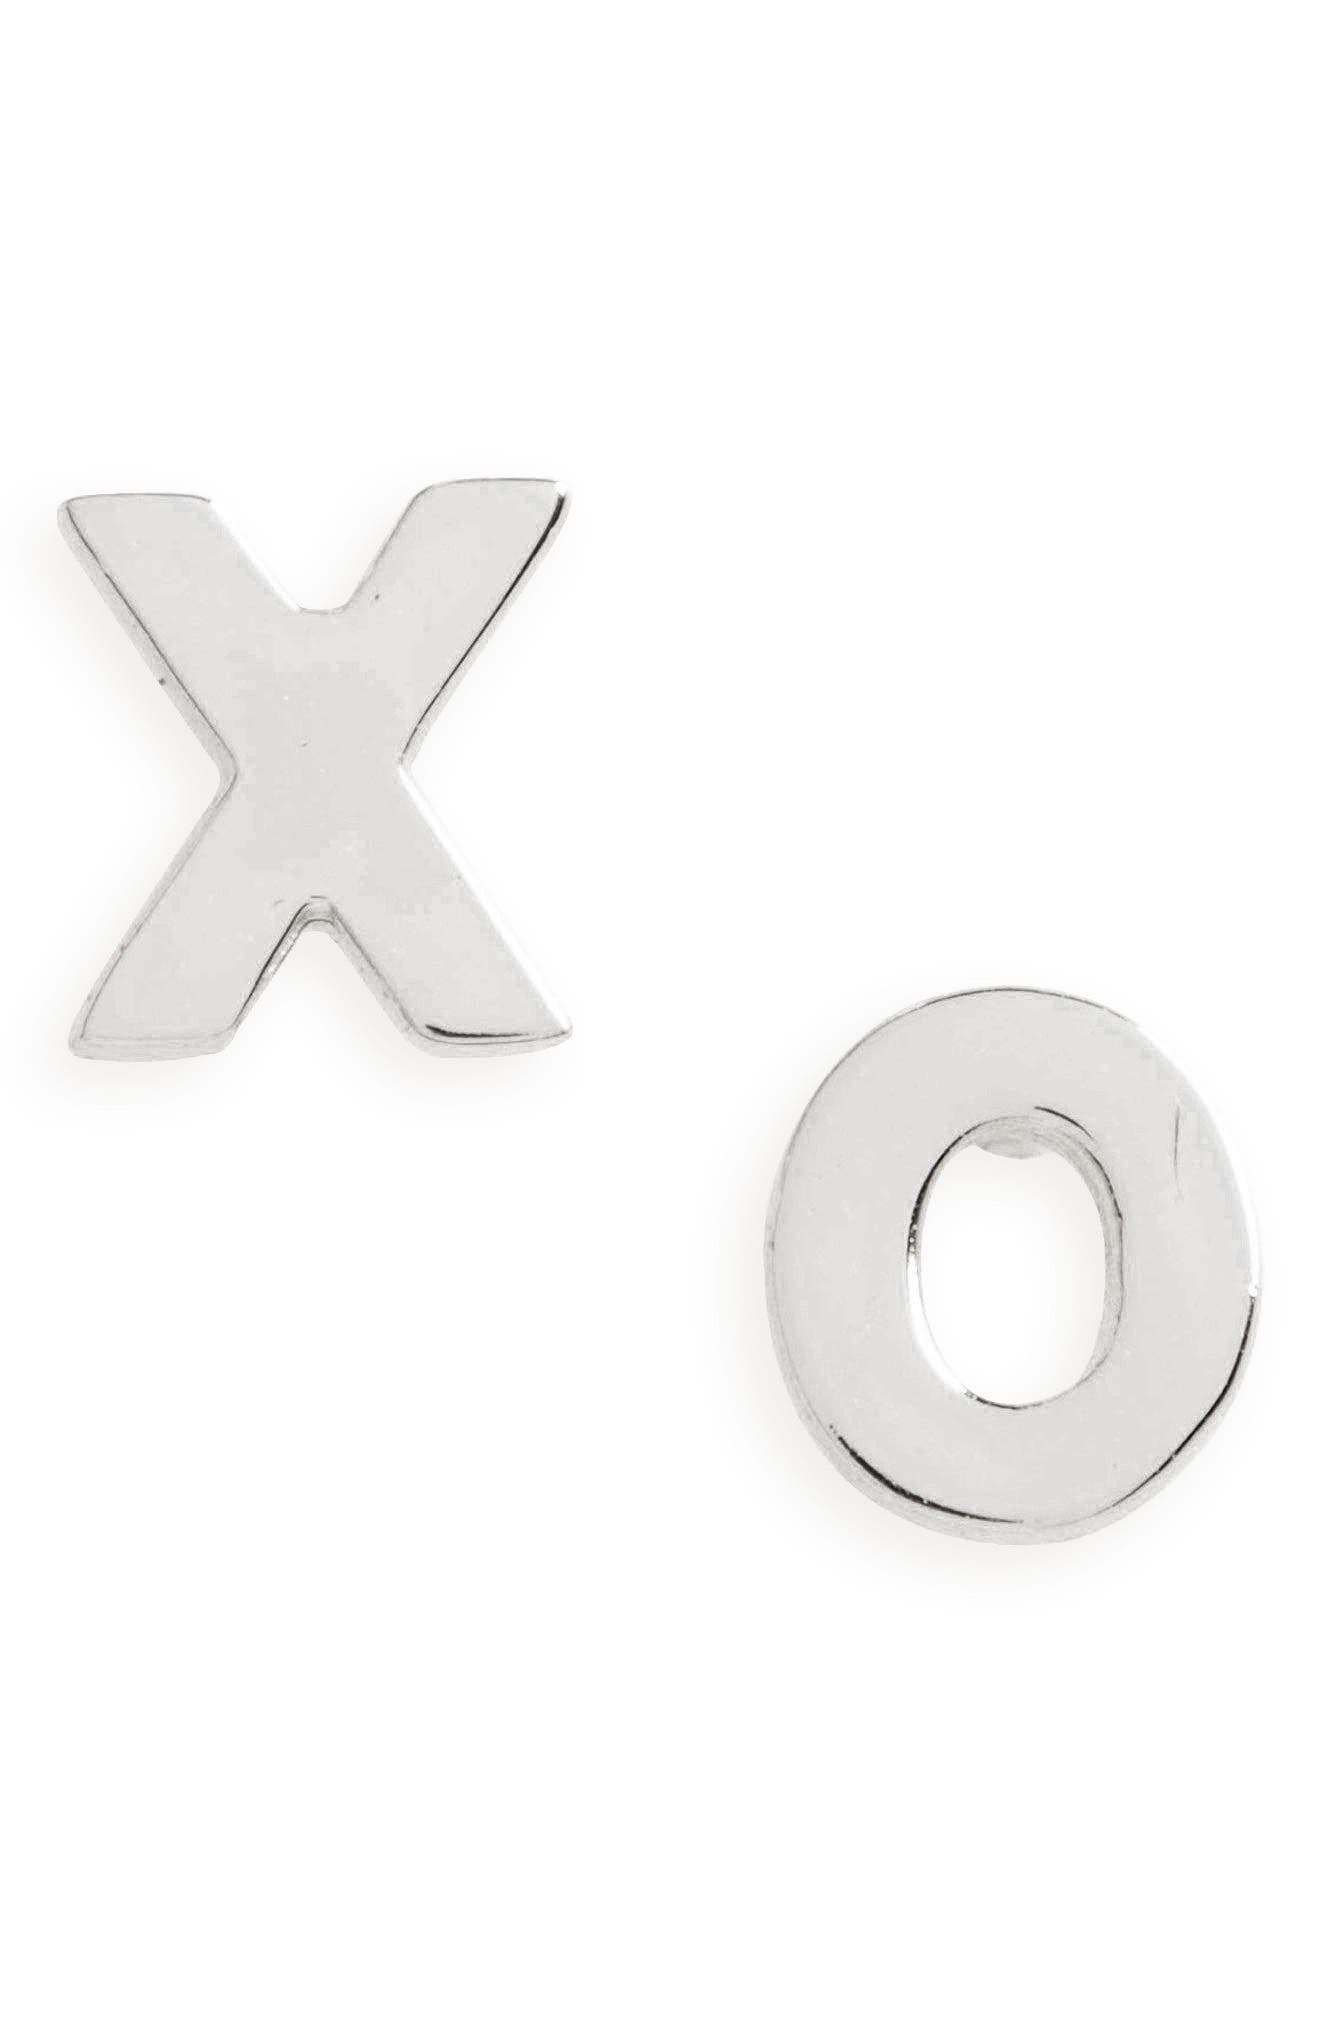 XO Stud Earrings,                         Main,                         color,